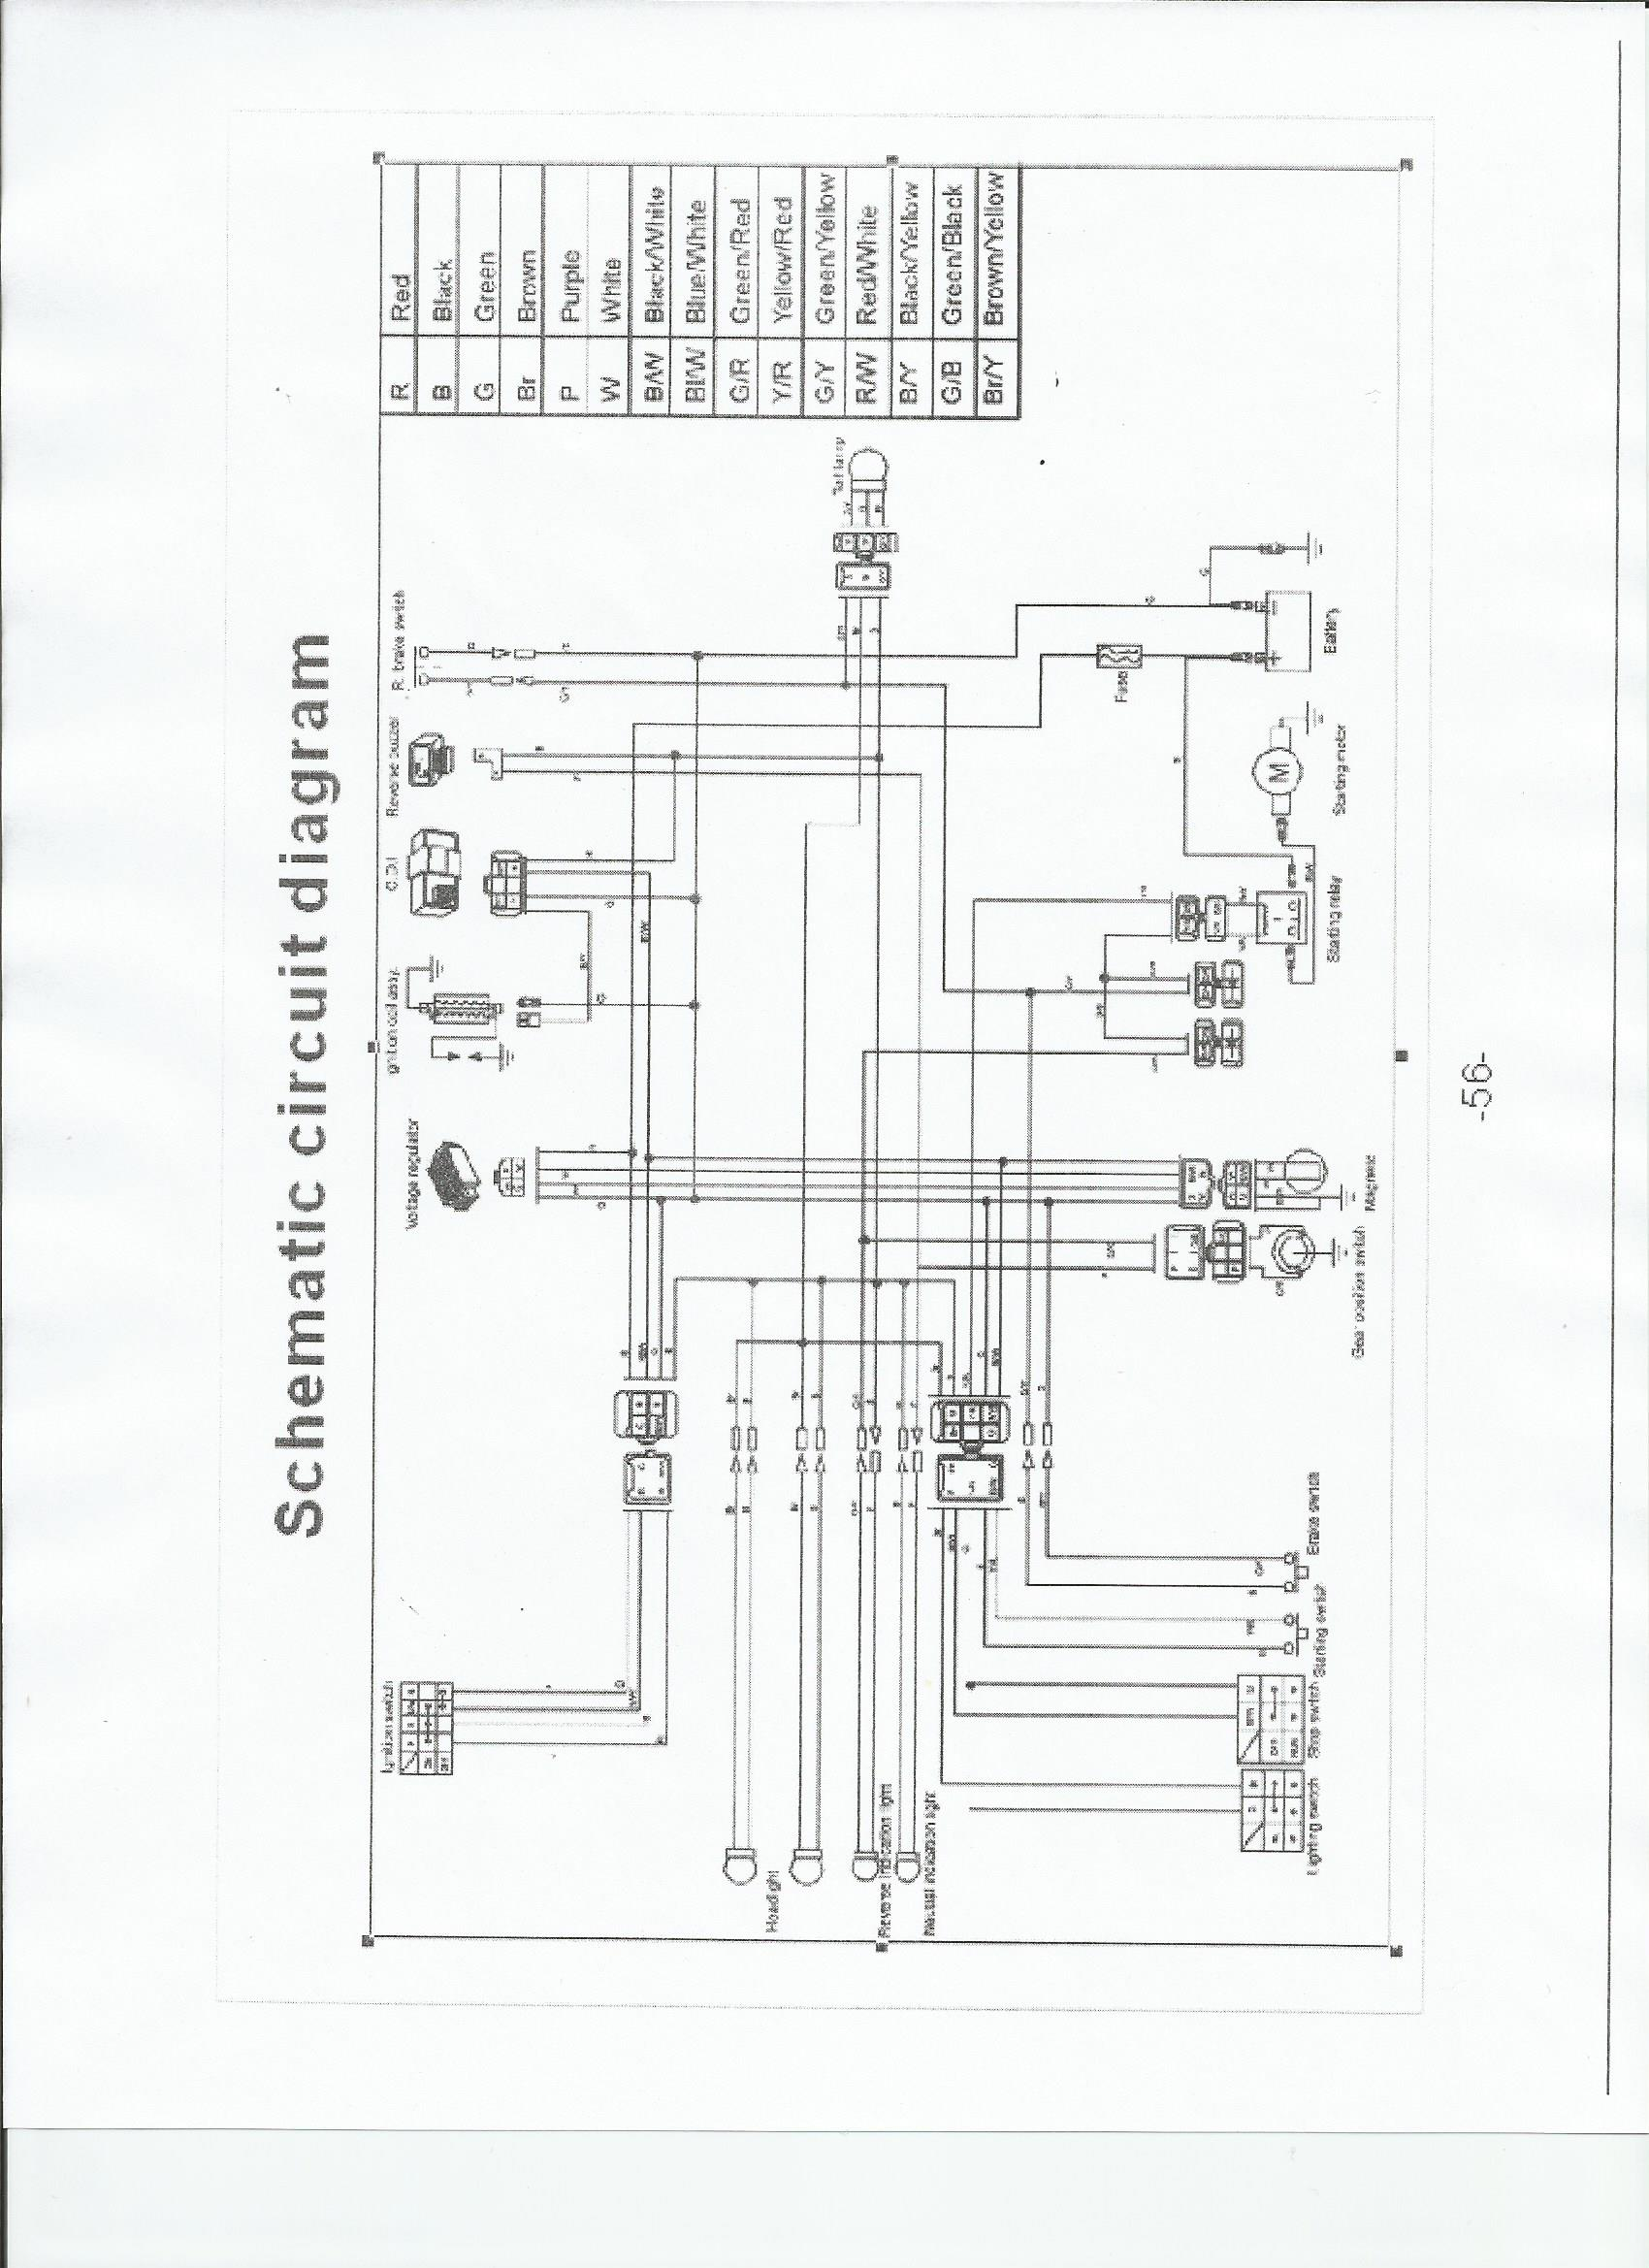 taotao mini and youth atv wiring schematic familygokarts support wiring diagram for a quad tao tao [ 1700 x 2338 Pixel ]